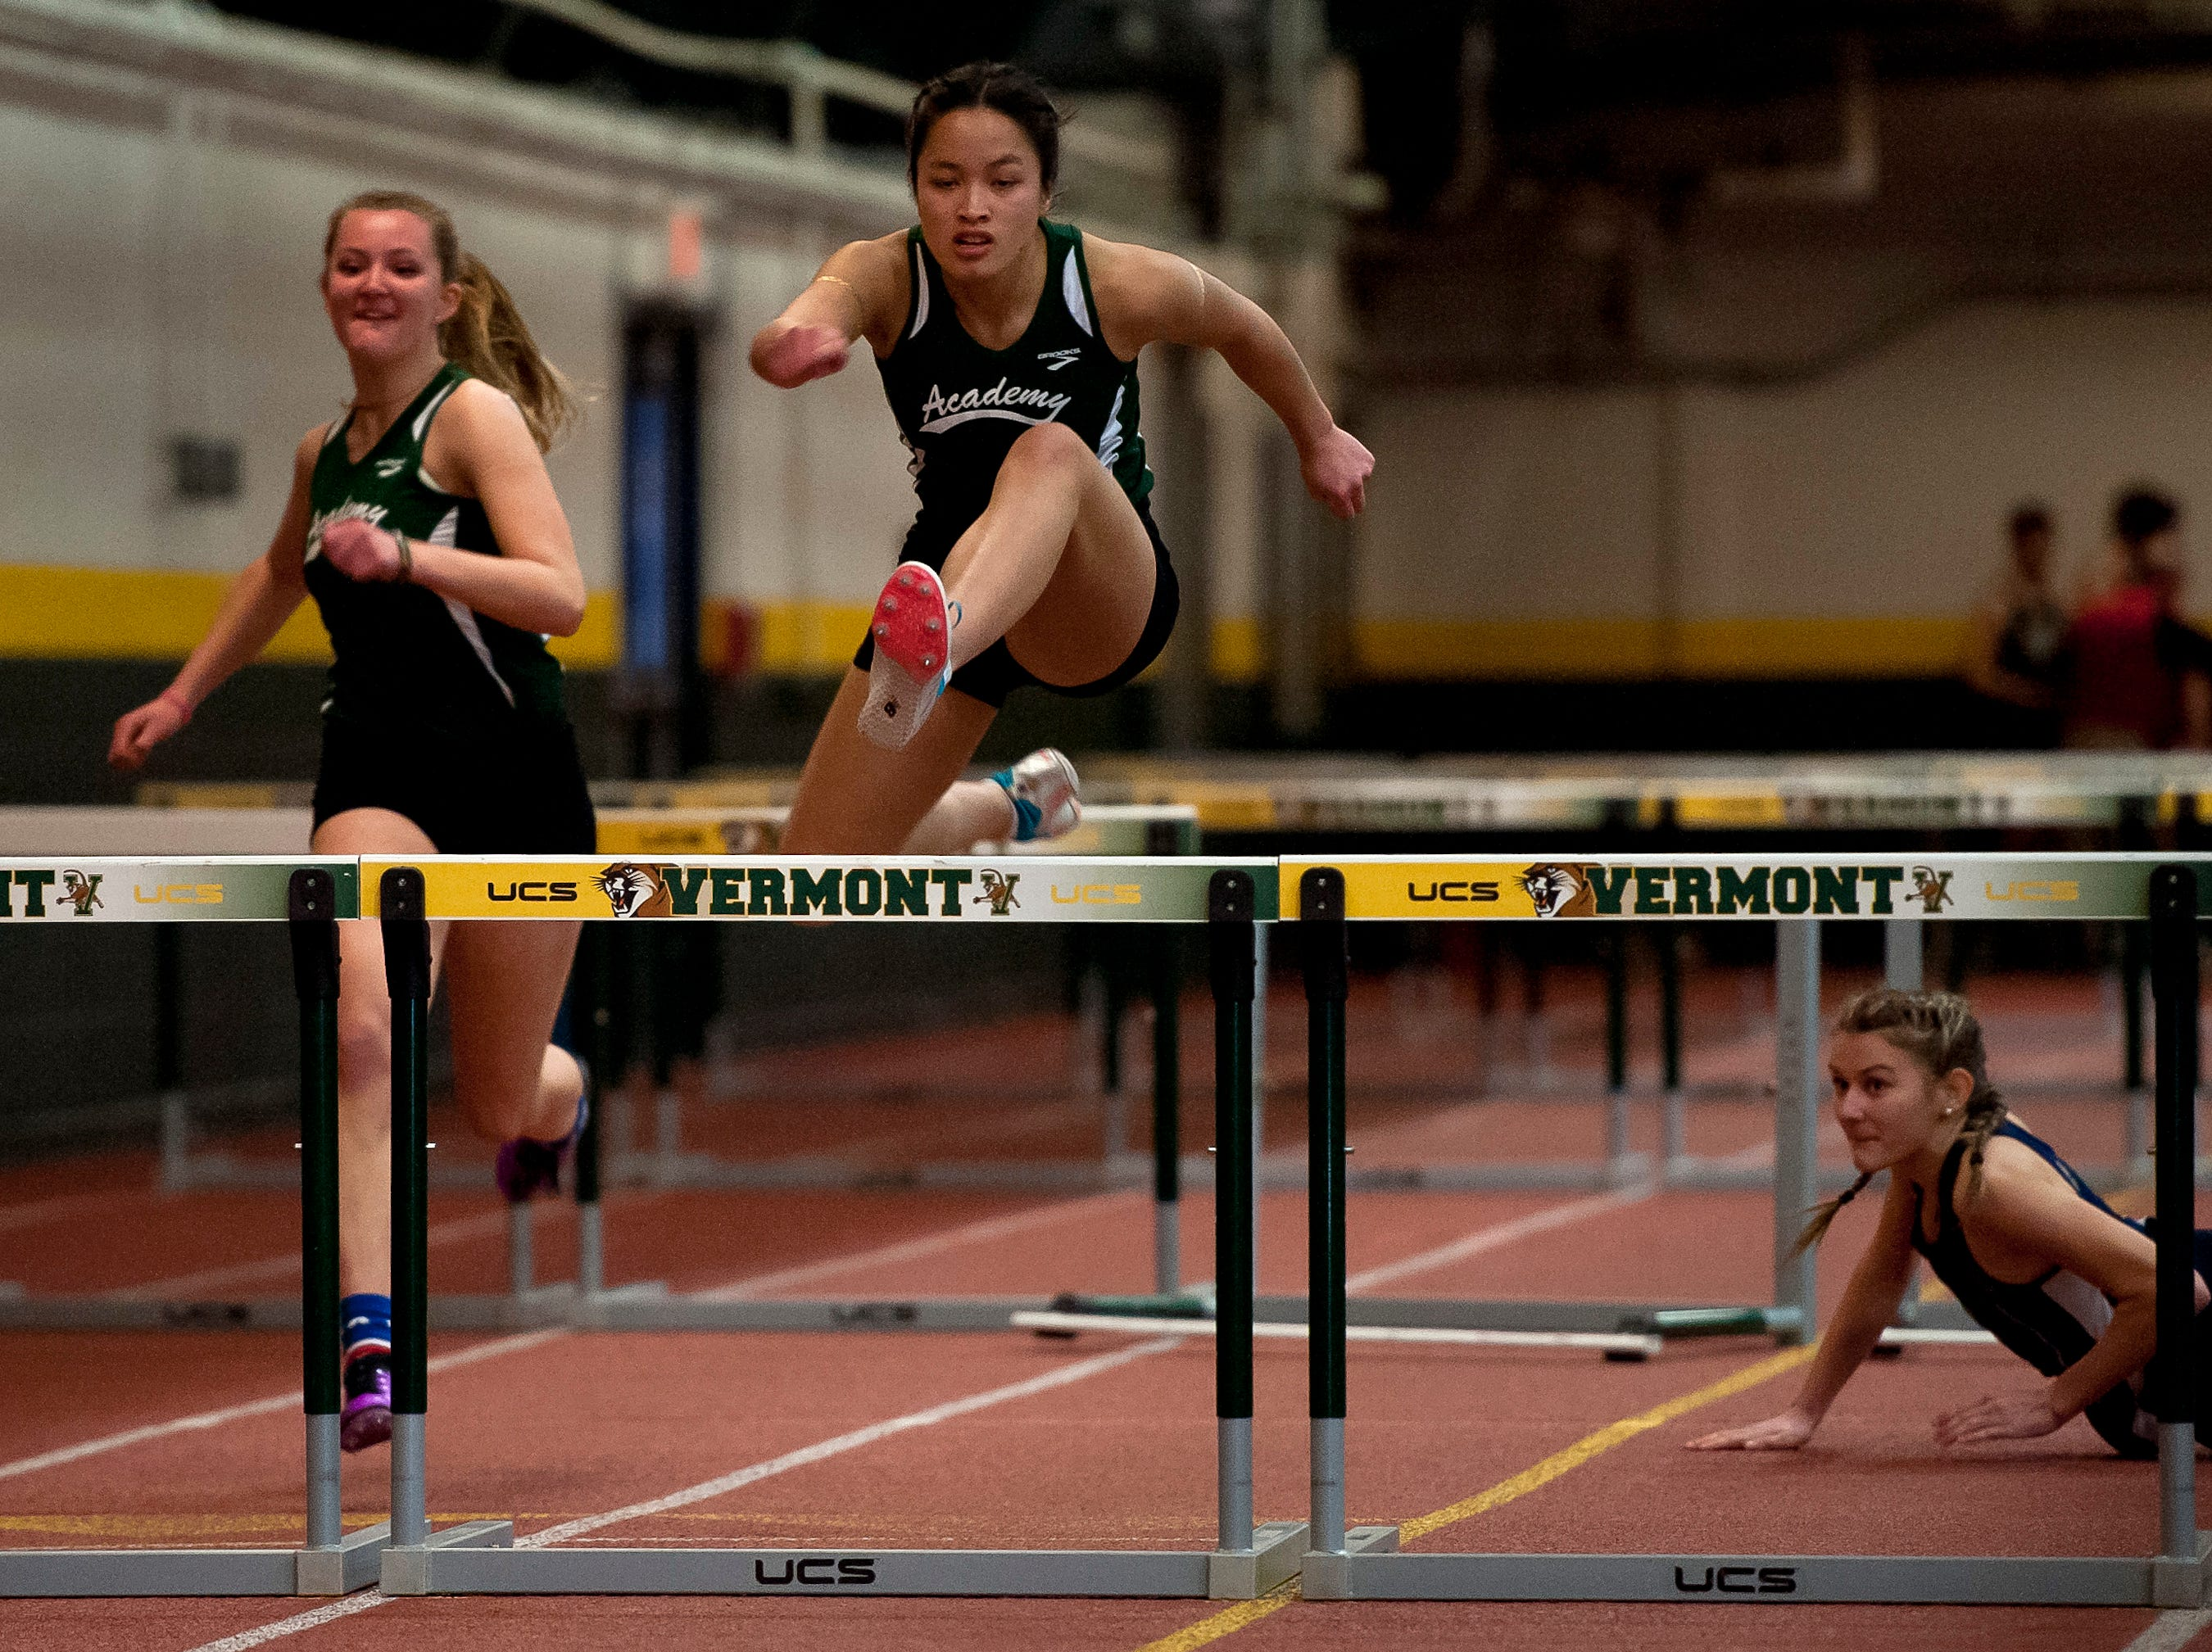 St. Johnsbury's Jen Rotti, center, clears the final hurdle in to win the girls 55-meter hurdles at the high school indoor track state championships at the University of Vermont on Saturday.